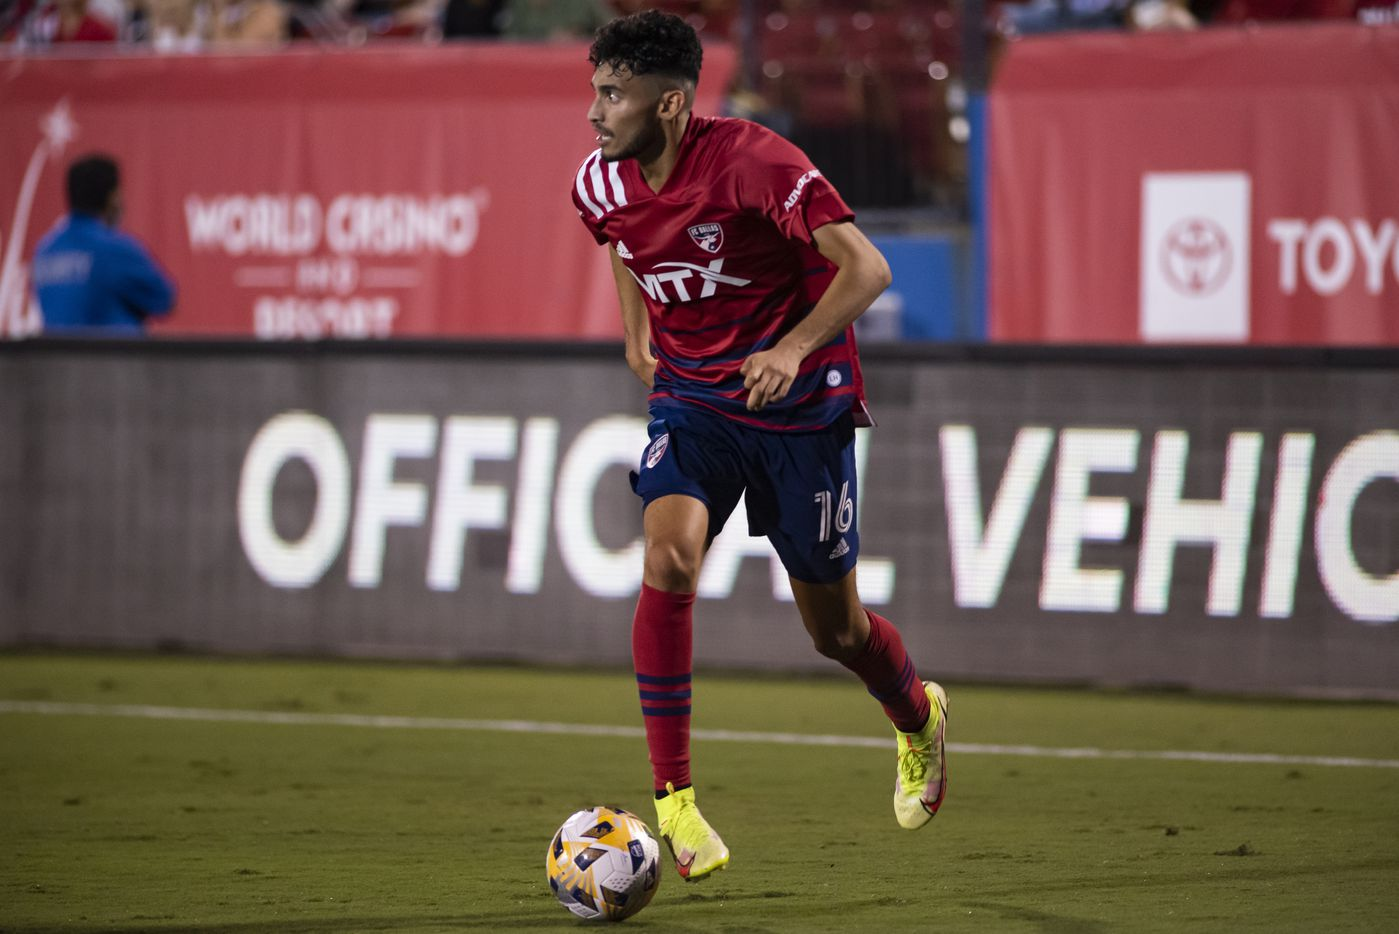 FC Dallas forward Ricardo Pepi (16) glances at a teammate to pass the ball to during FC DallasÕ home game against the San Jose Earthquakes at Toyota Stadium in Frisco, Texas on Saturday, September 11, 2021. (Emil Lippe/Special Contributor)